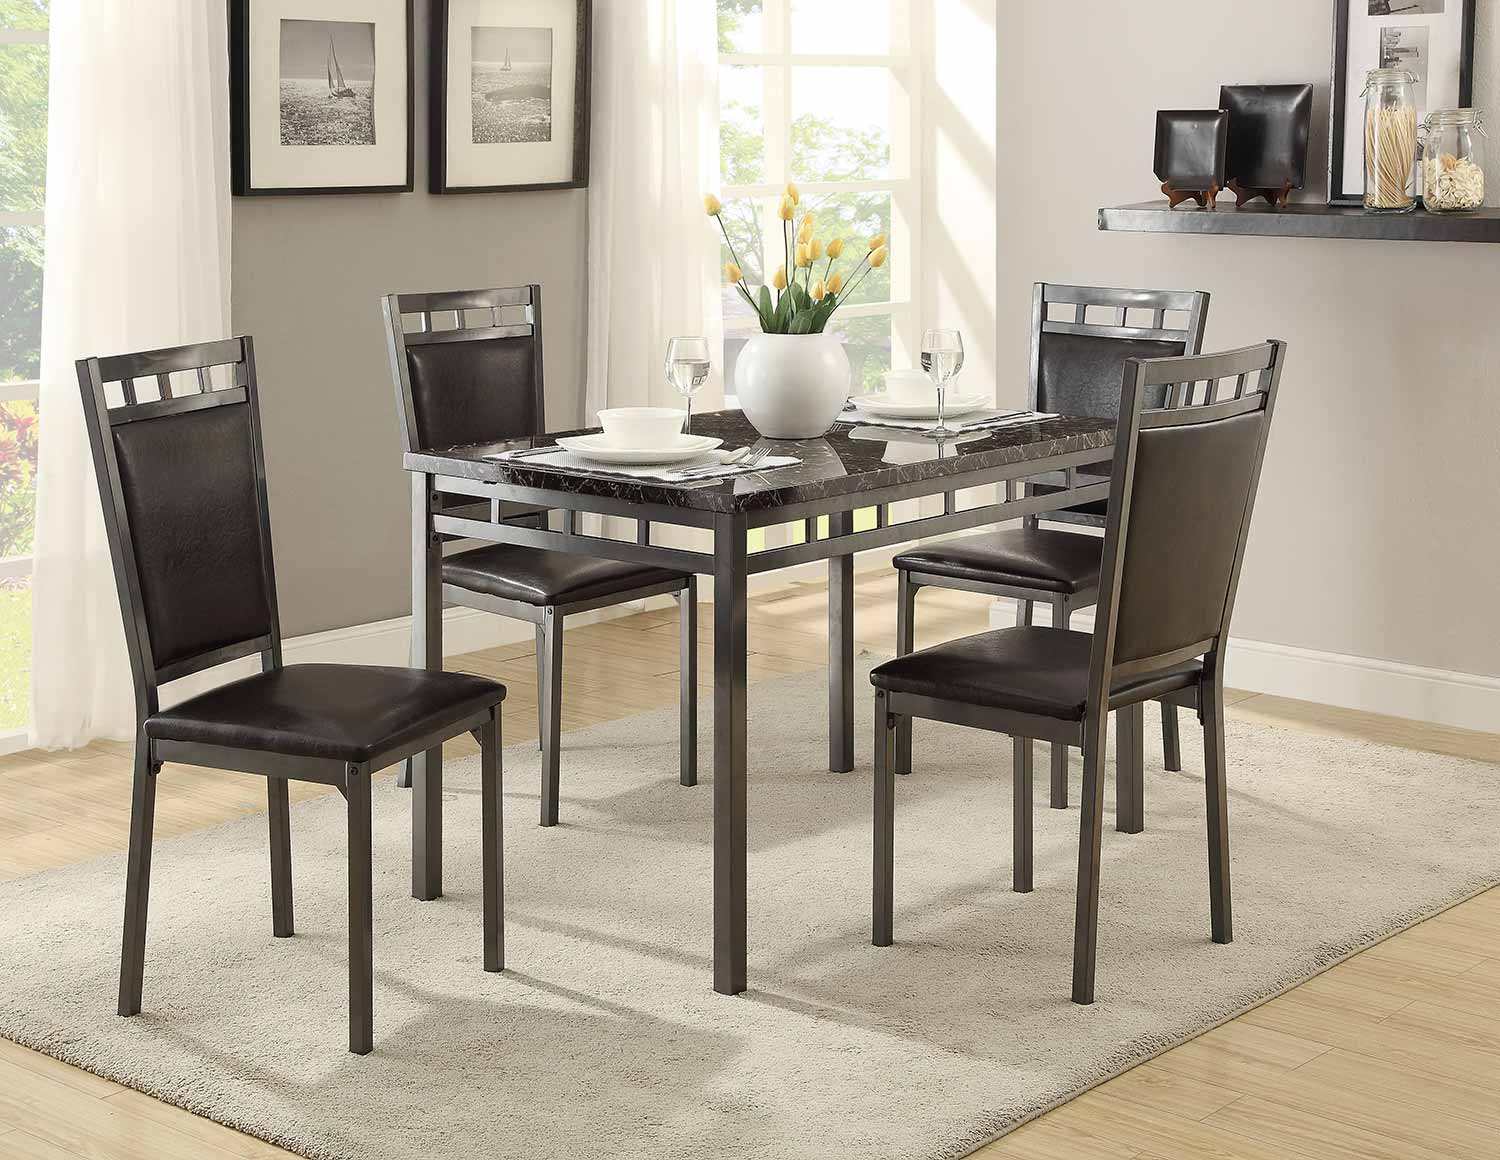 Homelegance Olney 5-Piece Pack Dinette Set - Metal